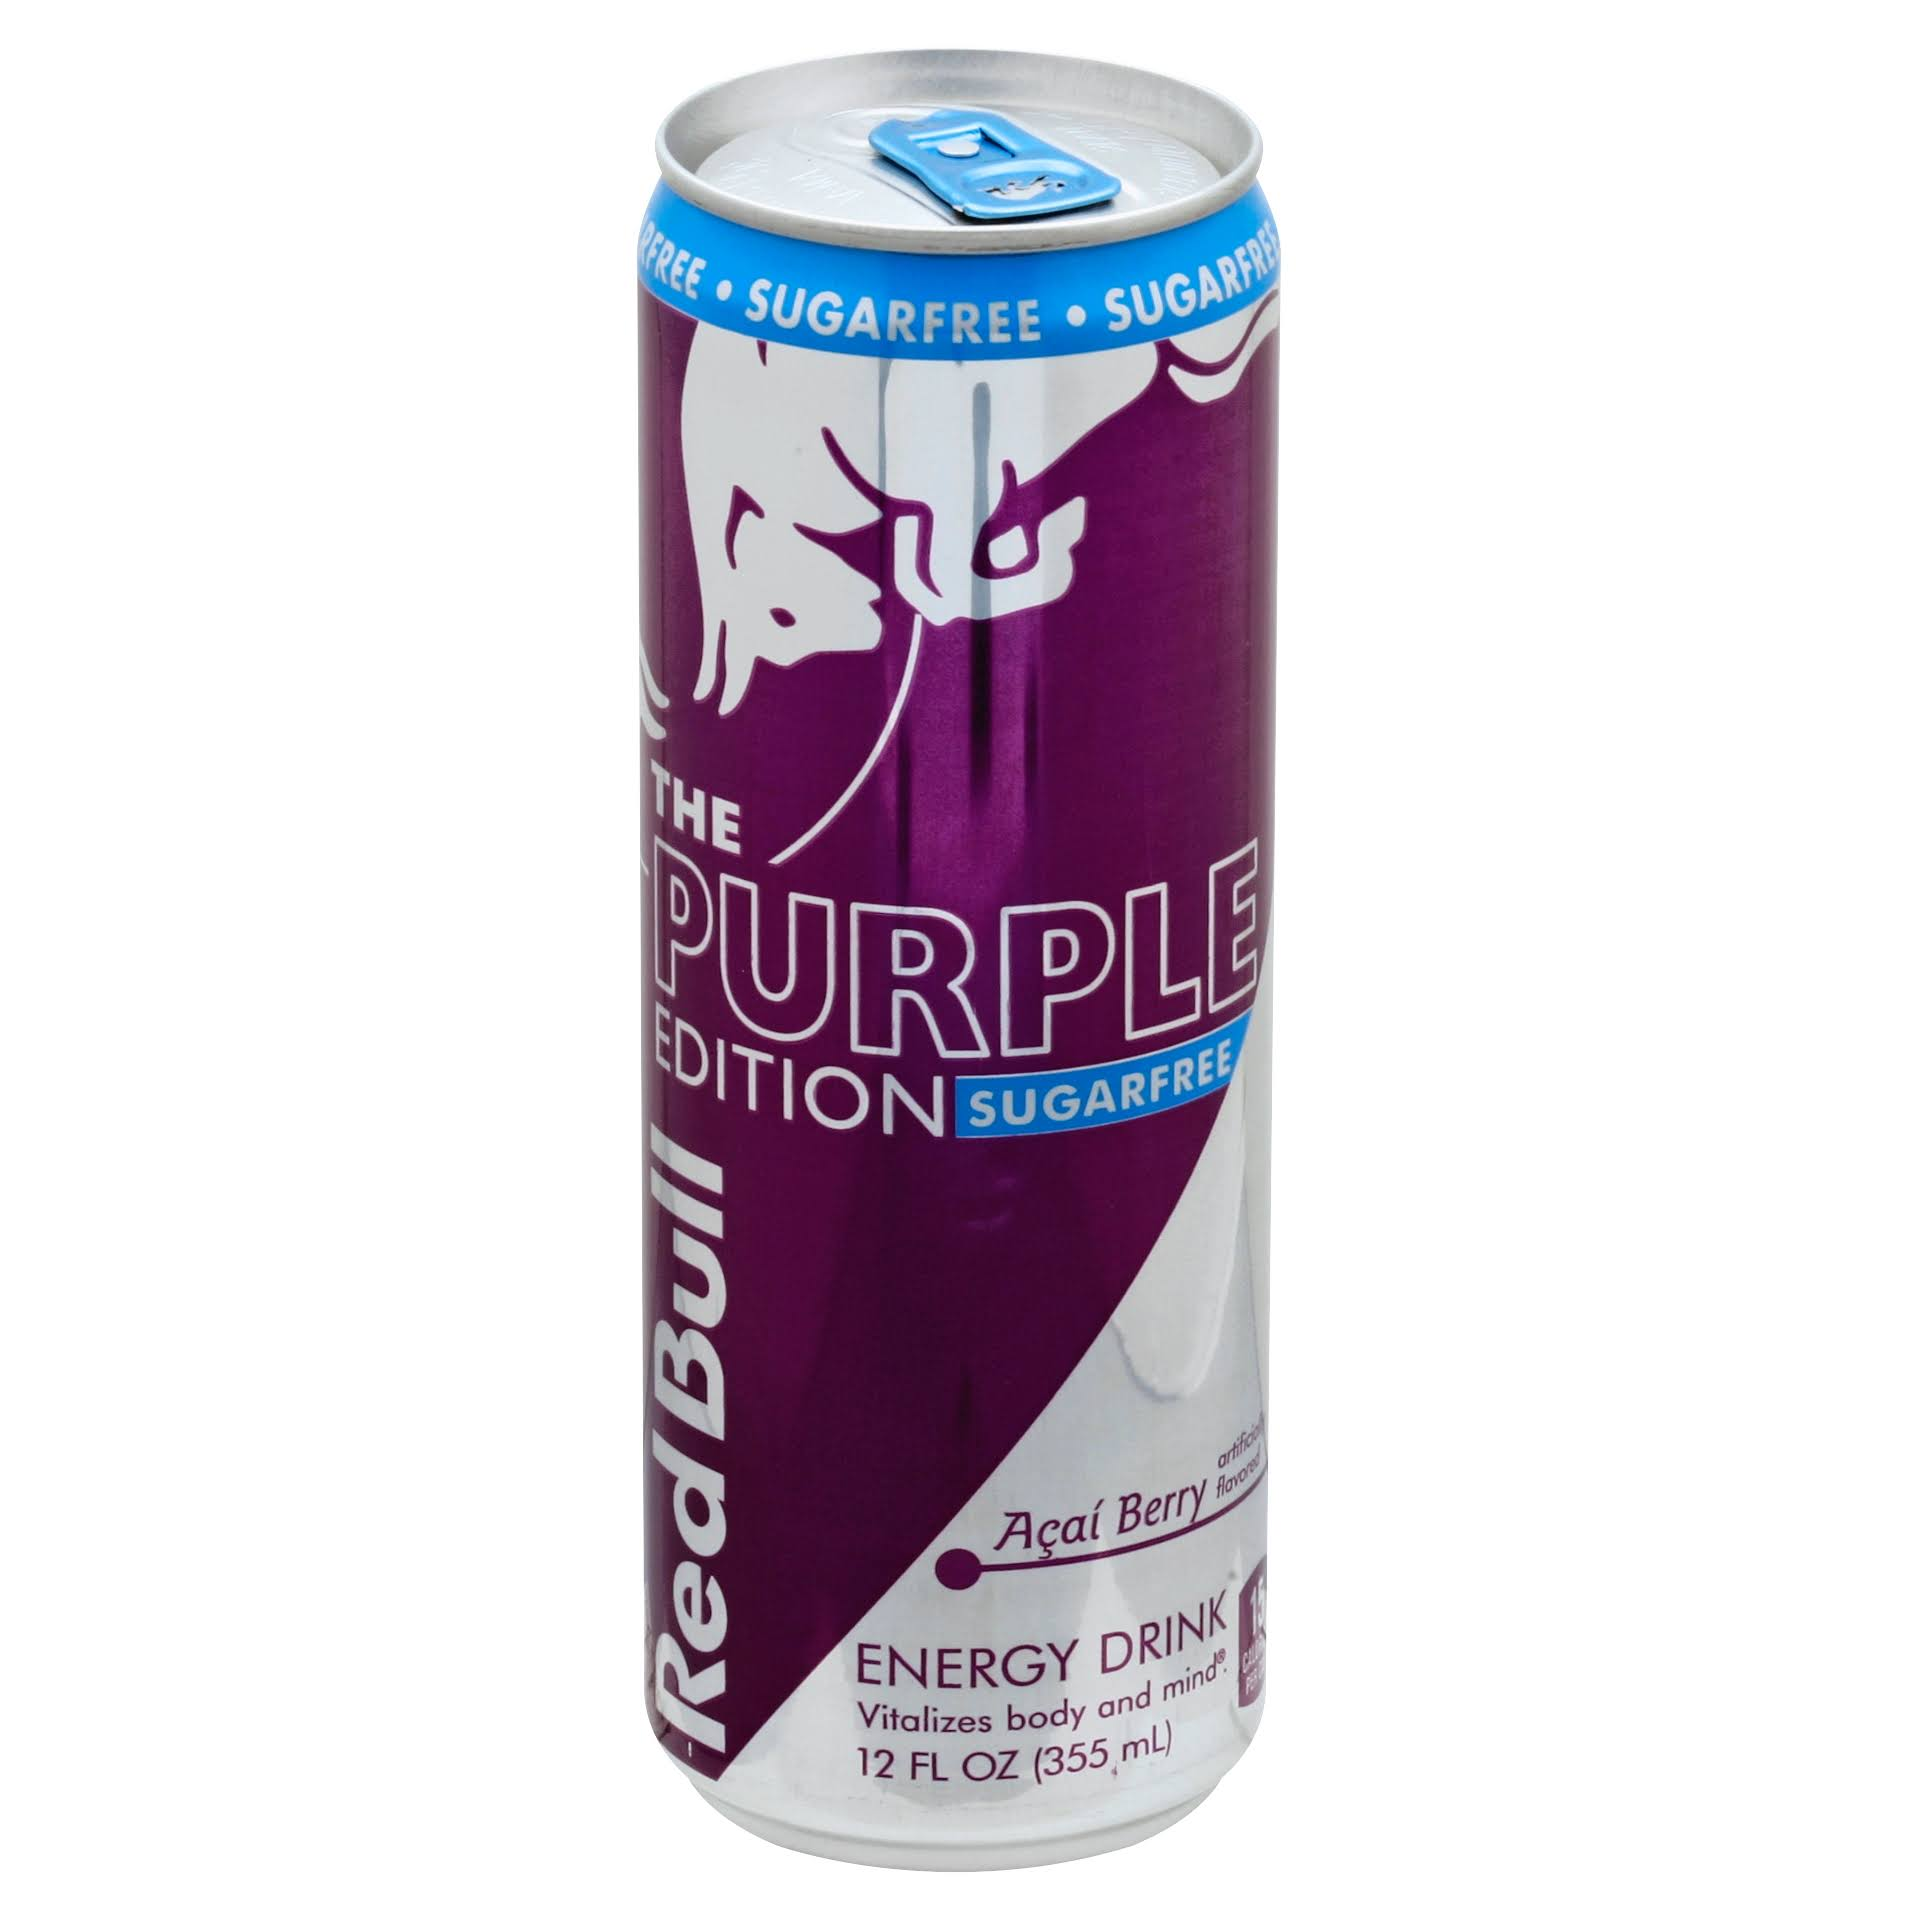 Red Bull Energy Drink, The Purple Edition, Sugarfree, Acai Berry - 12 fl oz